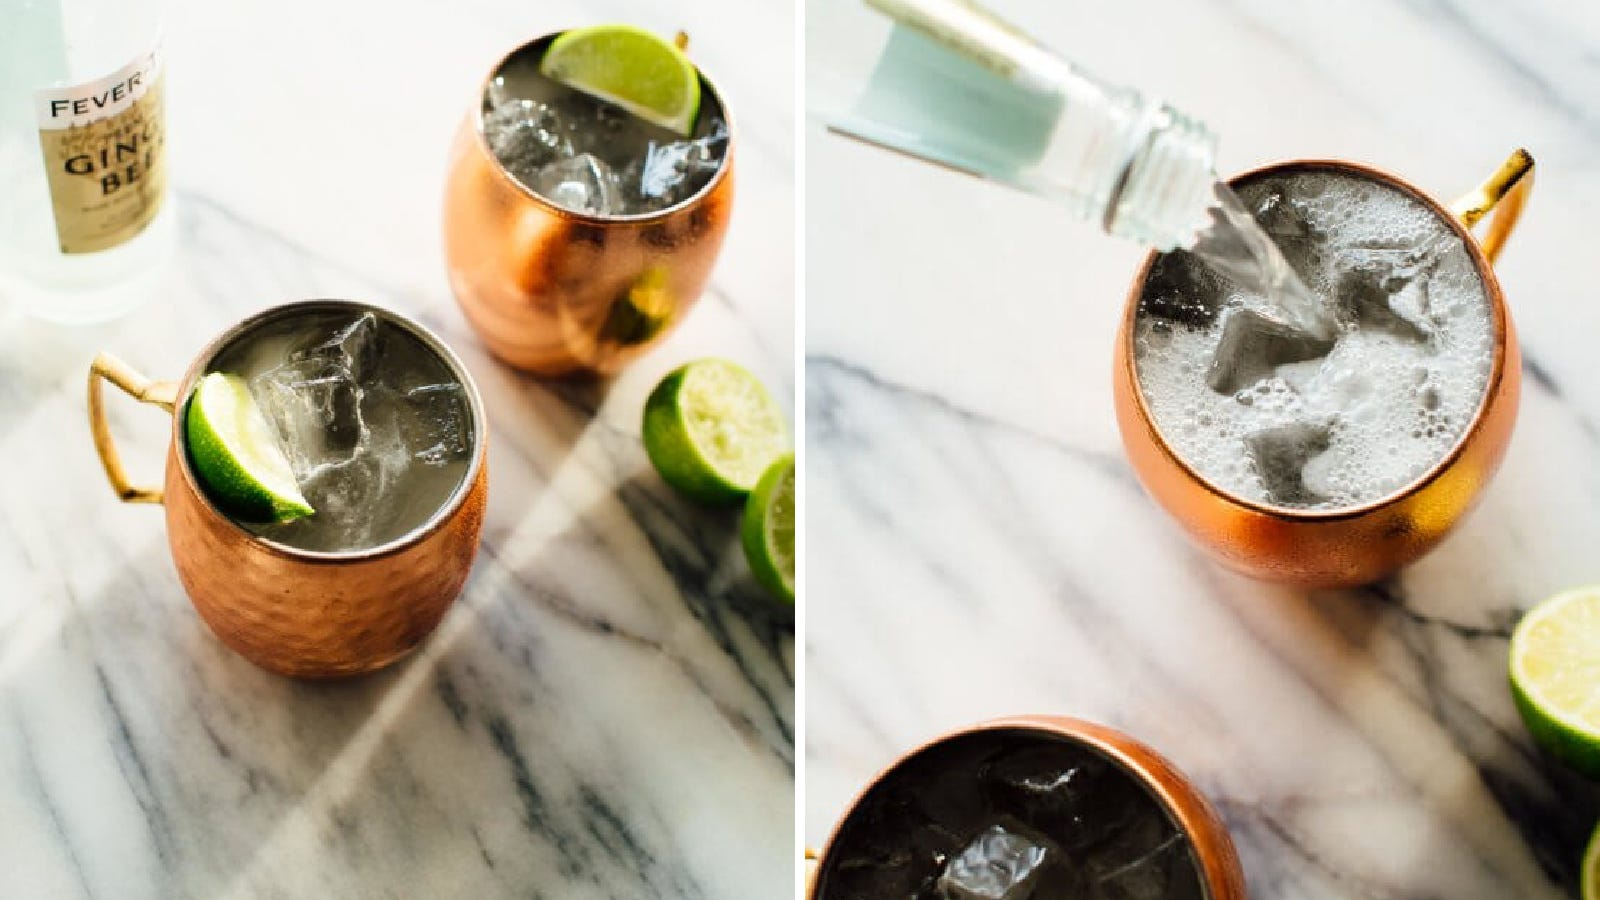 Two images; the left image features to copper mugs with a Moscow mule cocktail made up inside, garnished with a lime wedge, and the right image features someone pouring ginger beer into the mug, to make a mule cocktail.